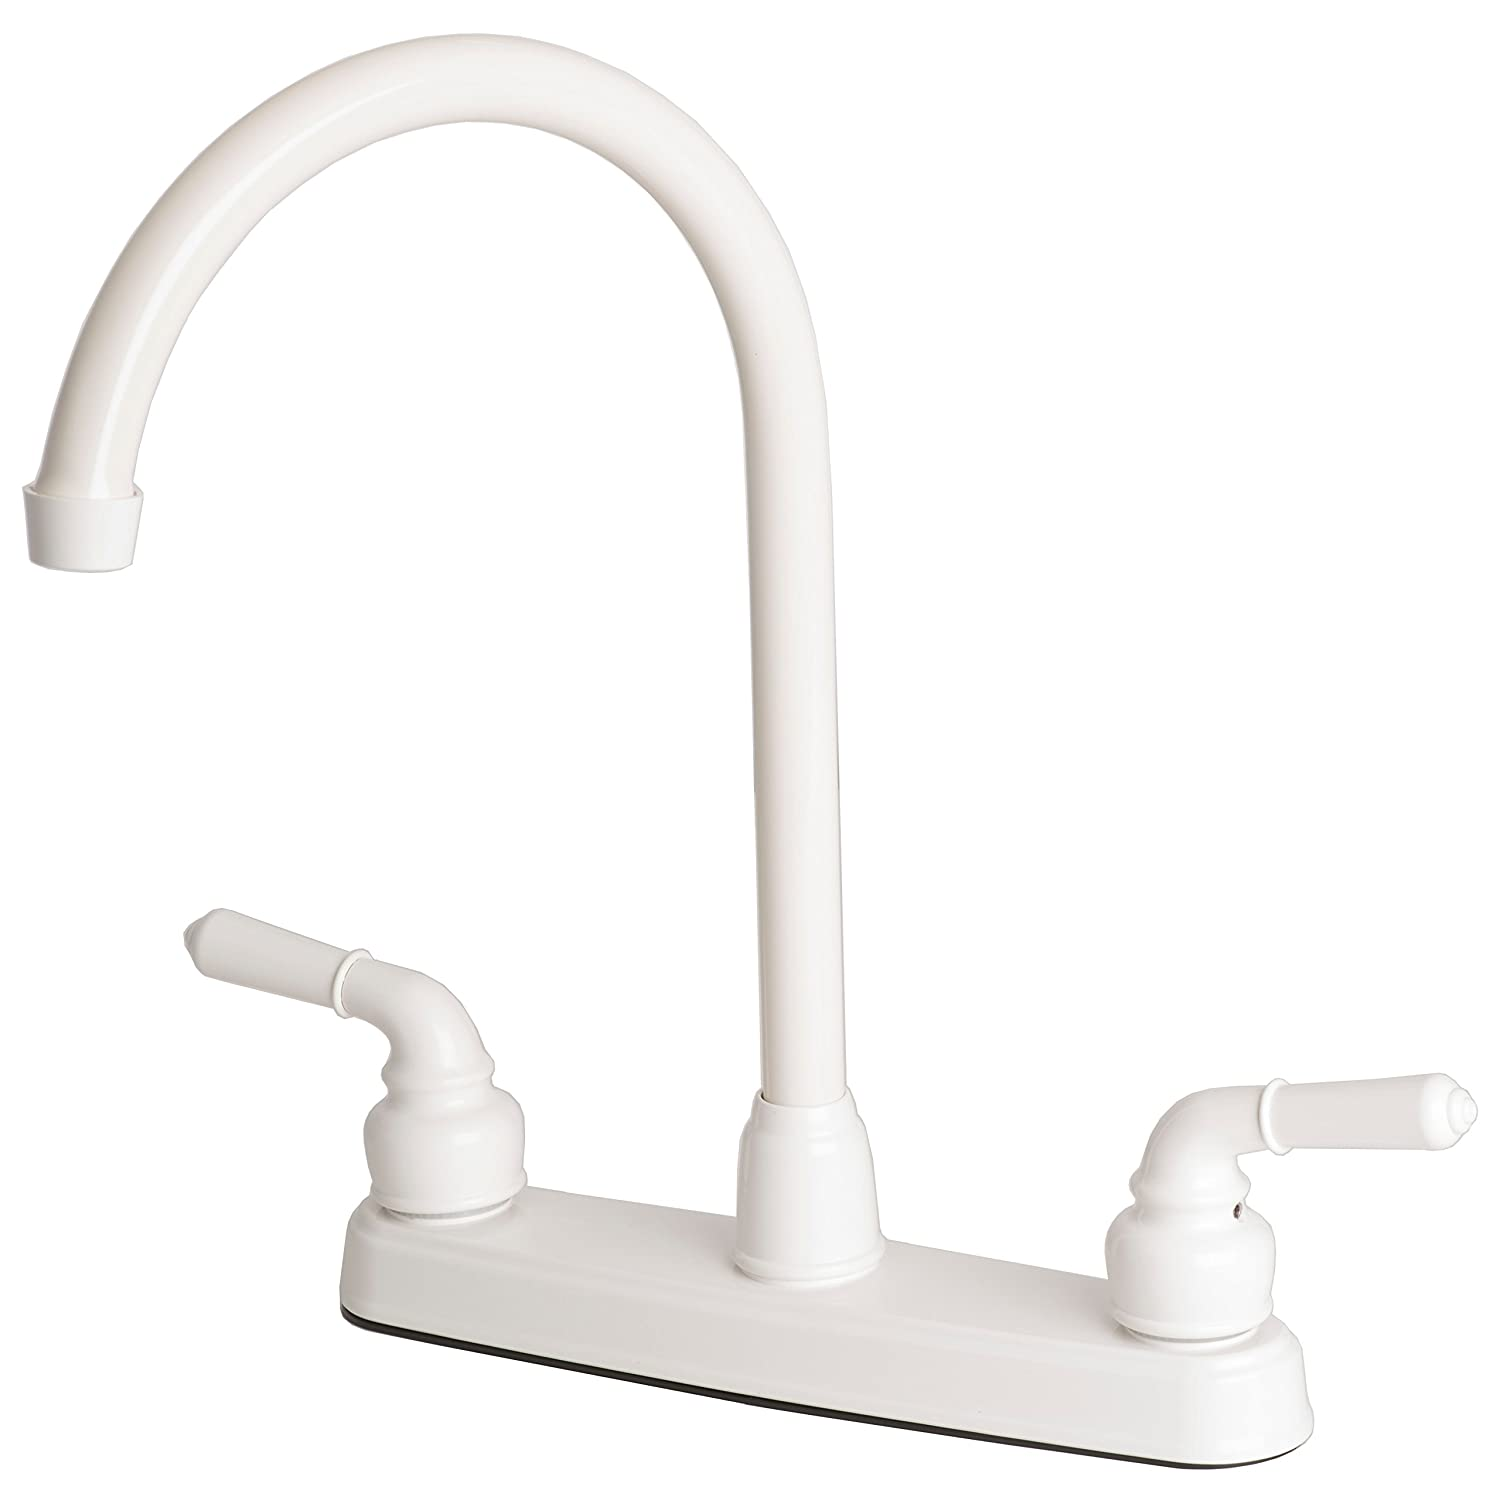 Builders Shoppe 1201WH RV Mobile Home Non-Metallic Two-Handle High Arc Swivel Kitchen Sink Faucet White Finish